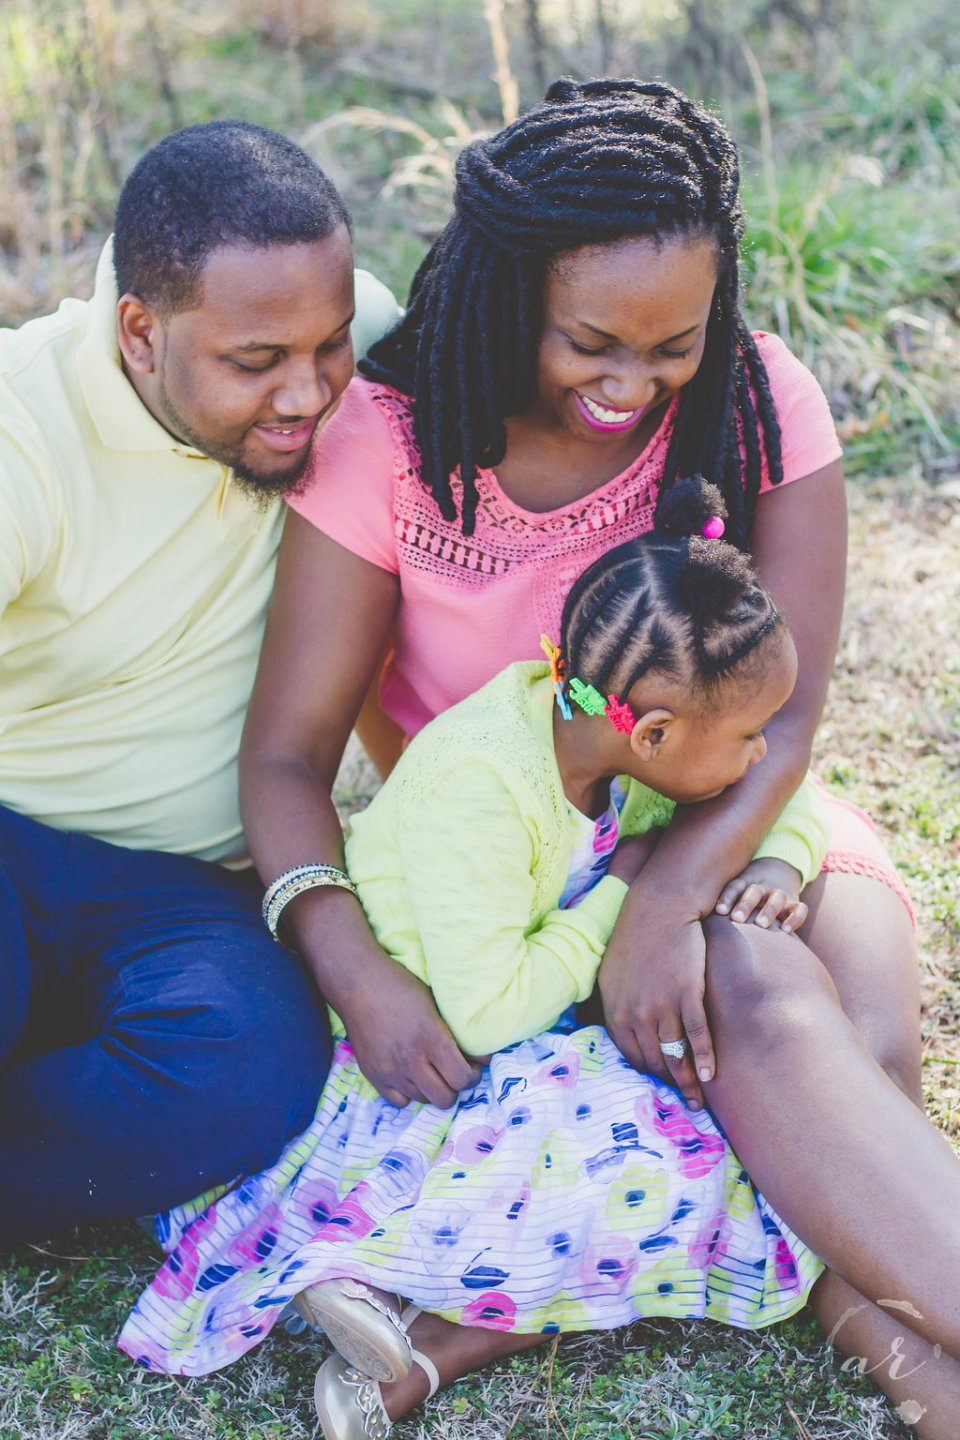 family-4-960x1440 Raleigh, NC Family Brings Spring to Life in Photoshoot